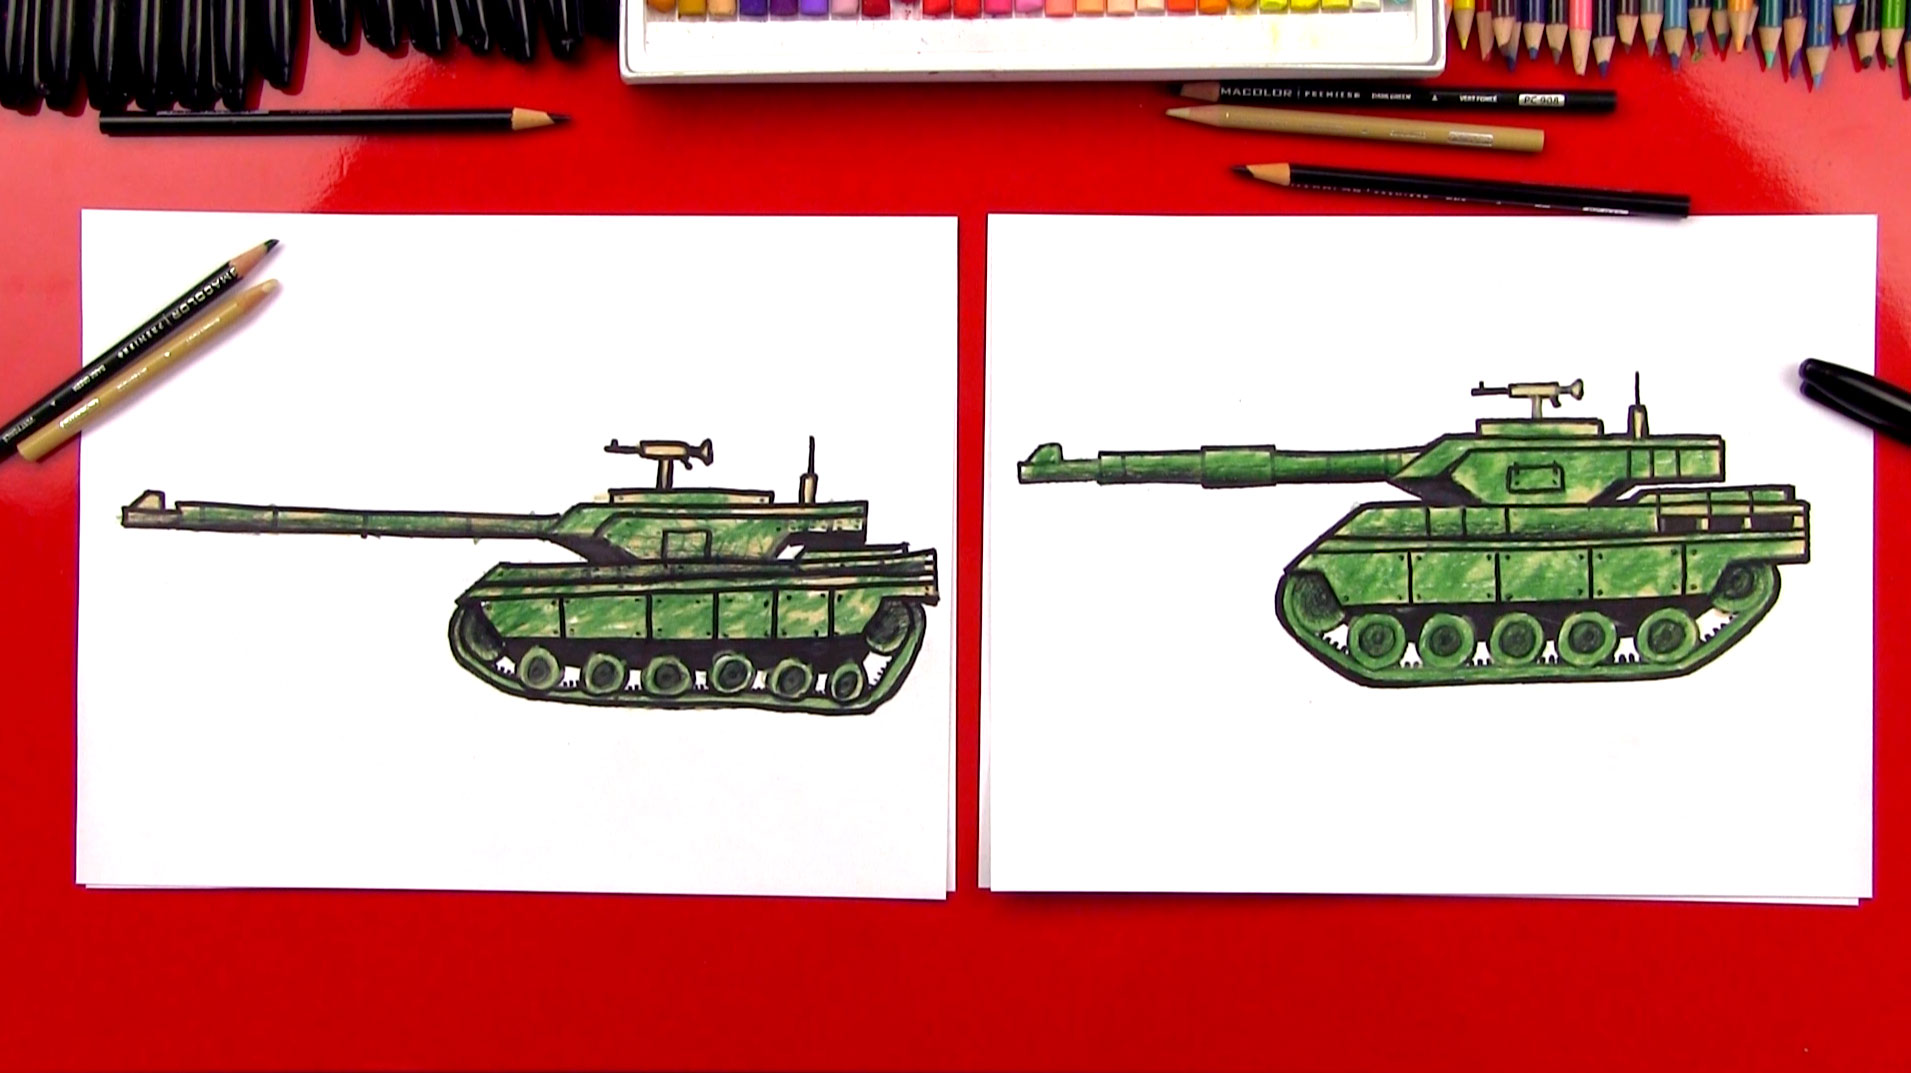 How To Draw A Realistic Tank - Art For Kids Hub